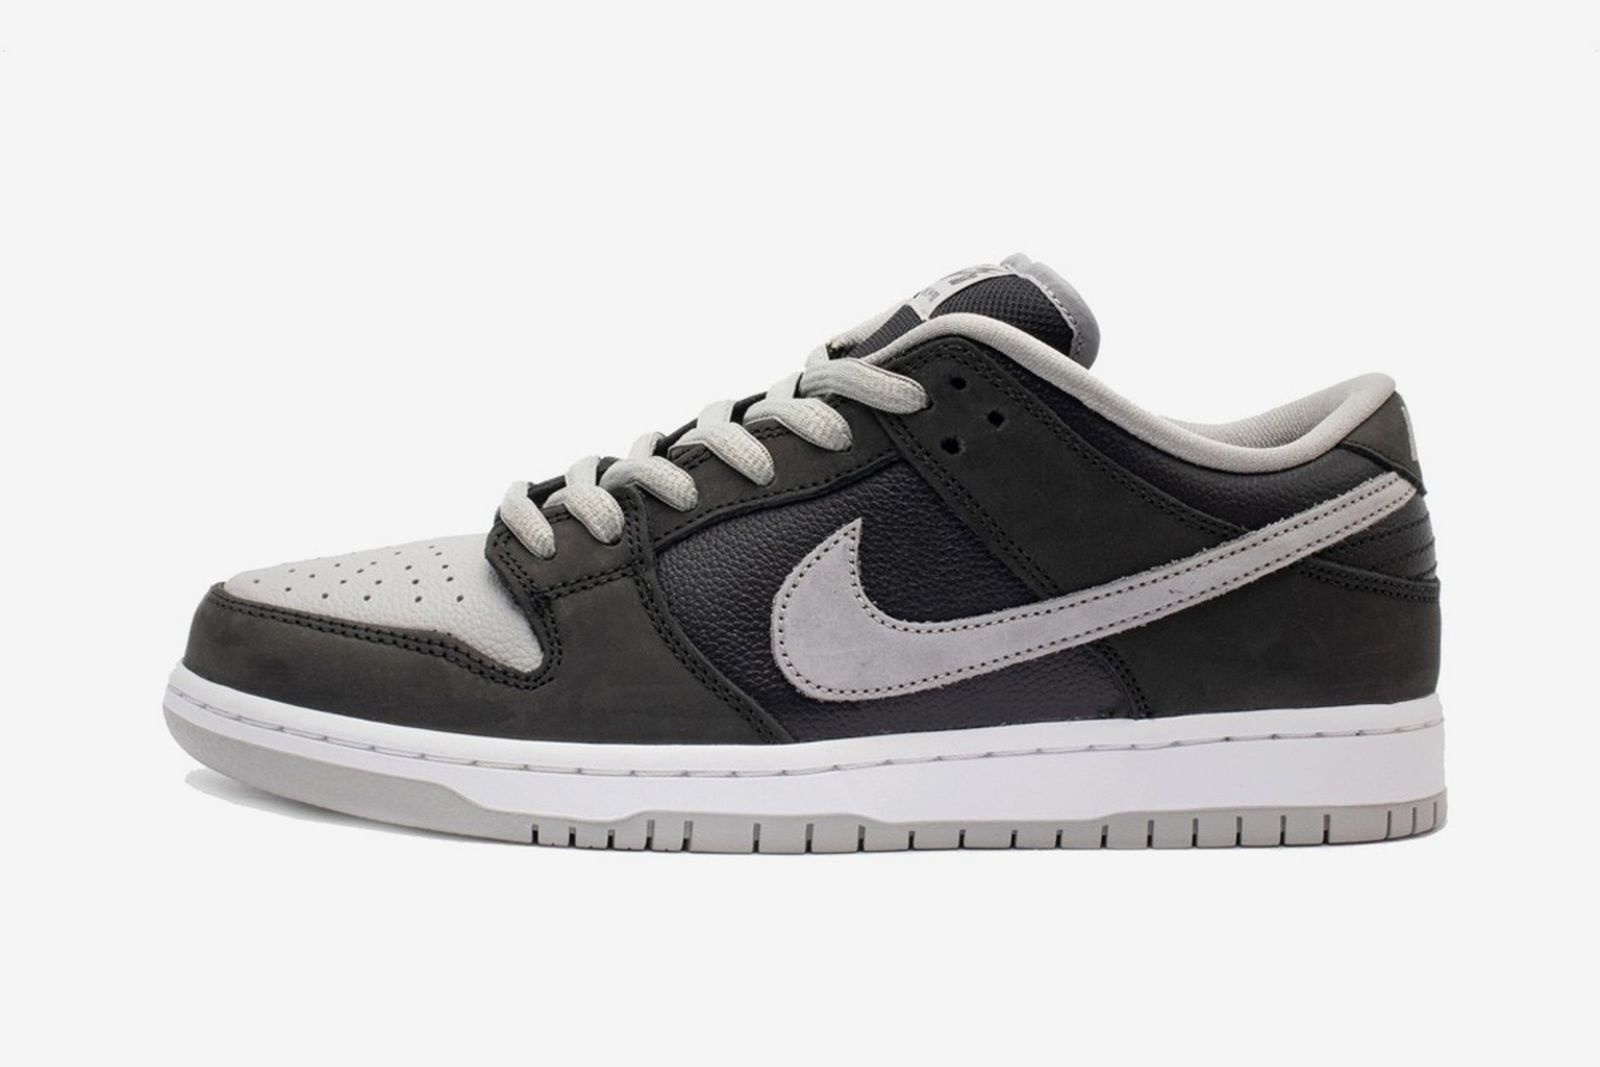 nike-sb-dunk-low-shadow-release-date-price-04